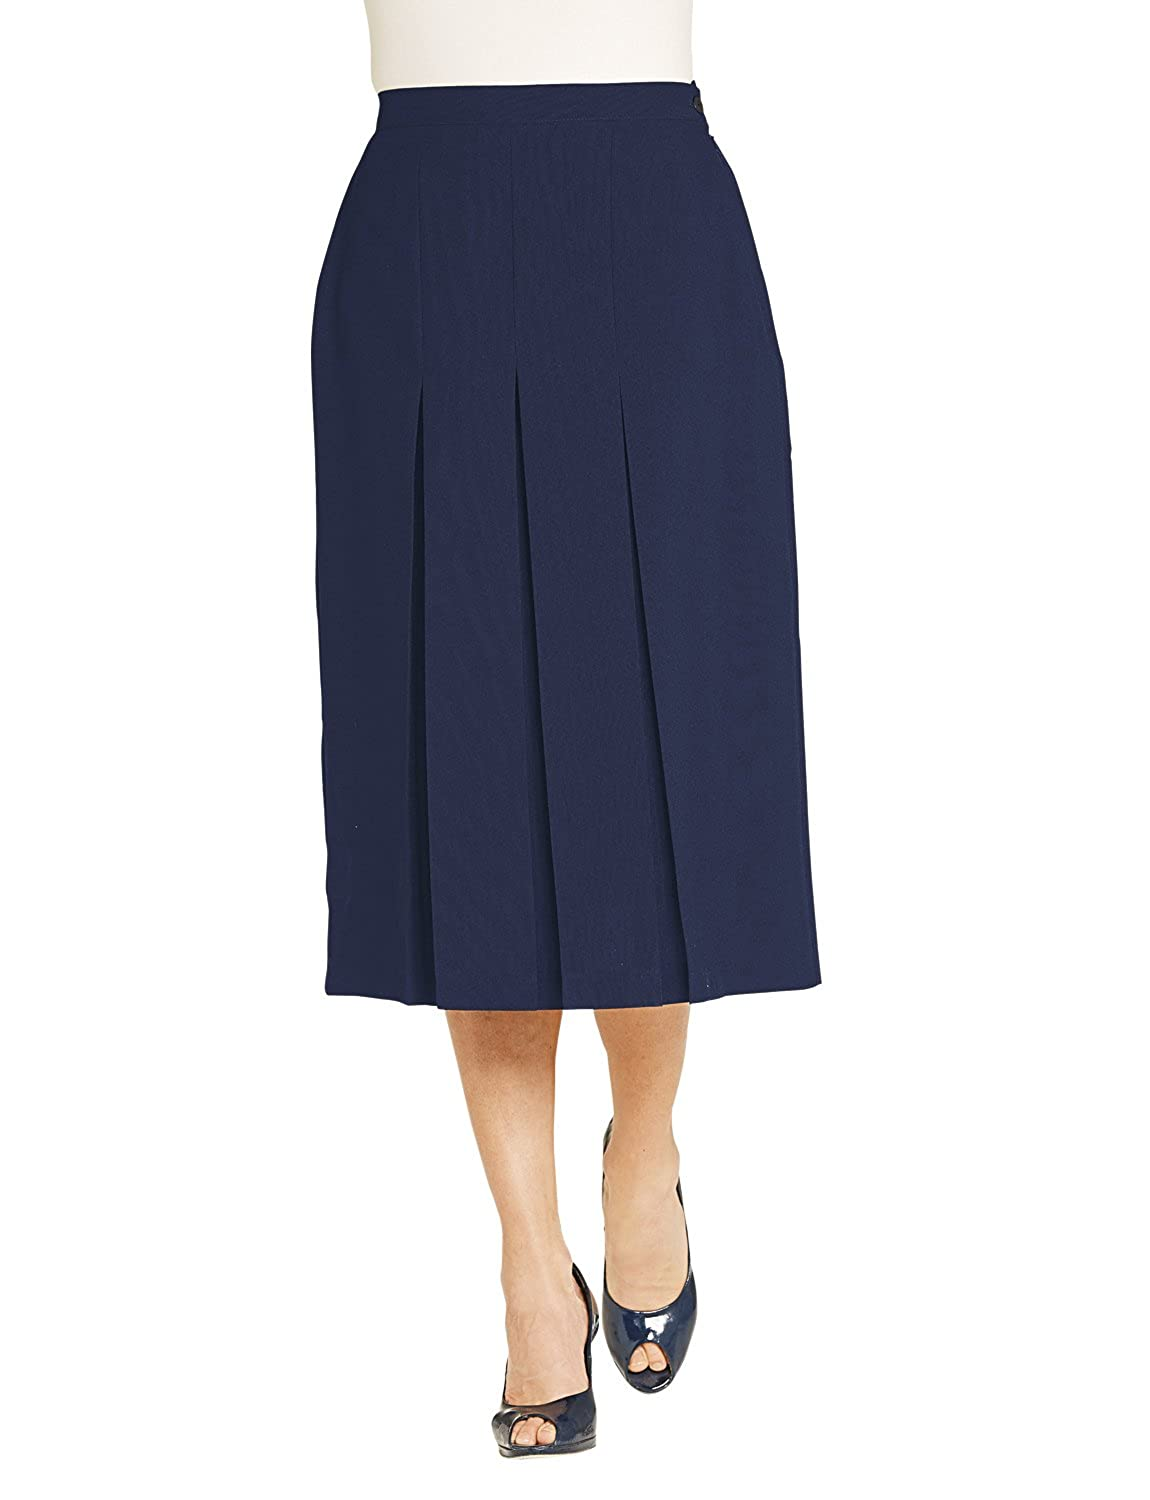 1940s Dresses and Clothing UK | 40s Shoes UK Chums Ladies Womens Inverted Pleat Skirt 27 Inches £19.99 AT vintagedancer.com